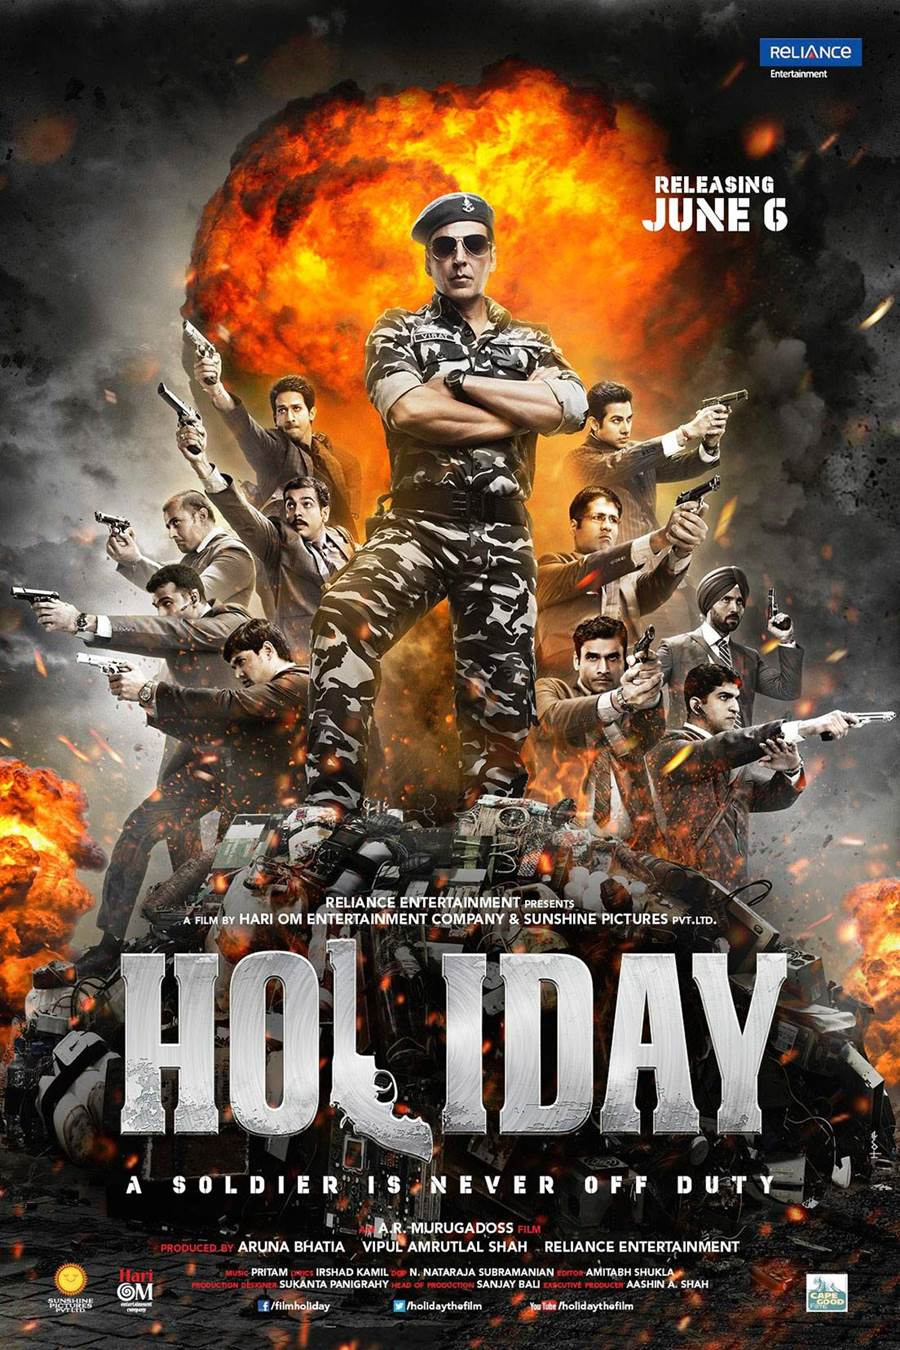 Bollywood Movie Based On Patriotism - Holiday